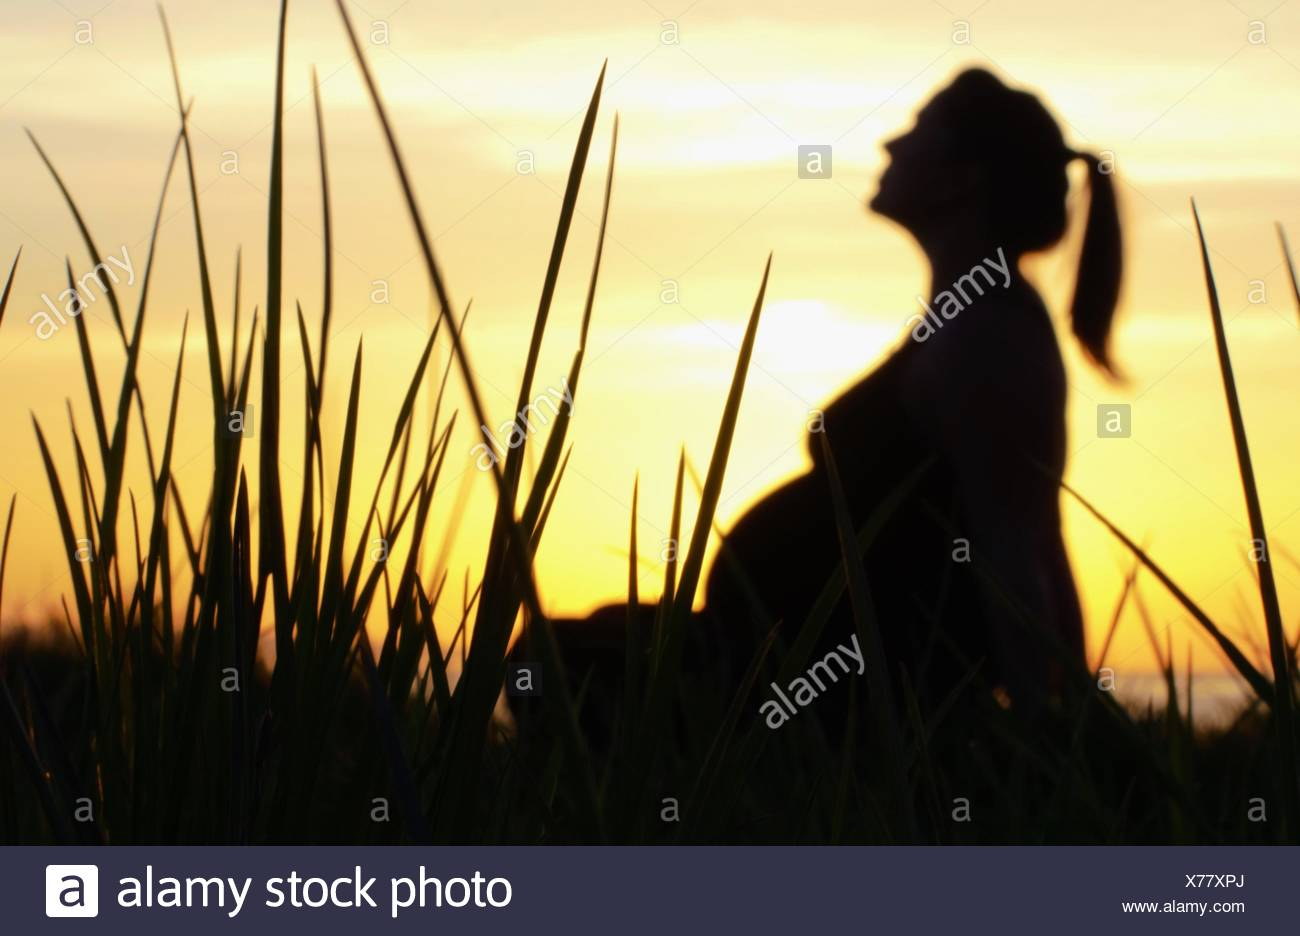 Sunset Silhouette of Pregnant Woman sitting amongst tall grass - Stock Image